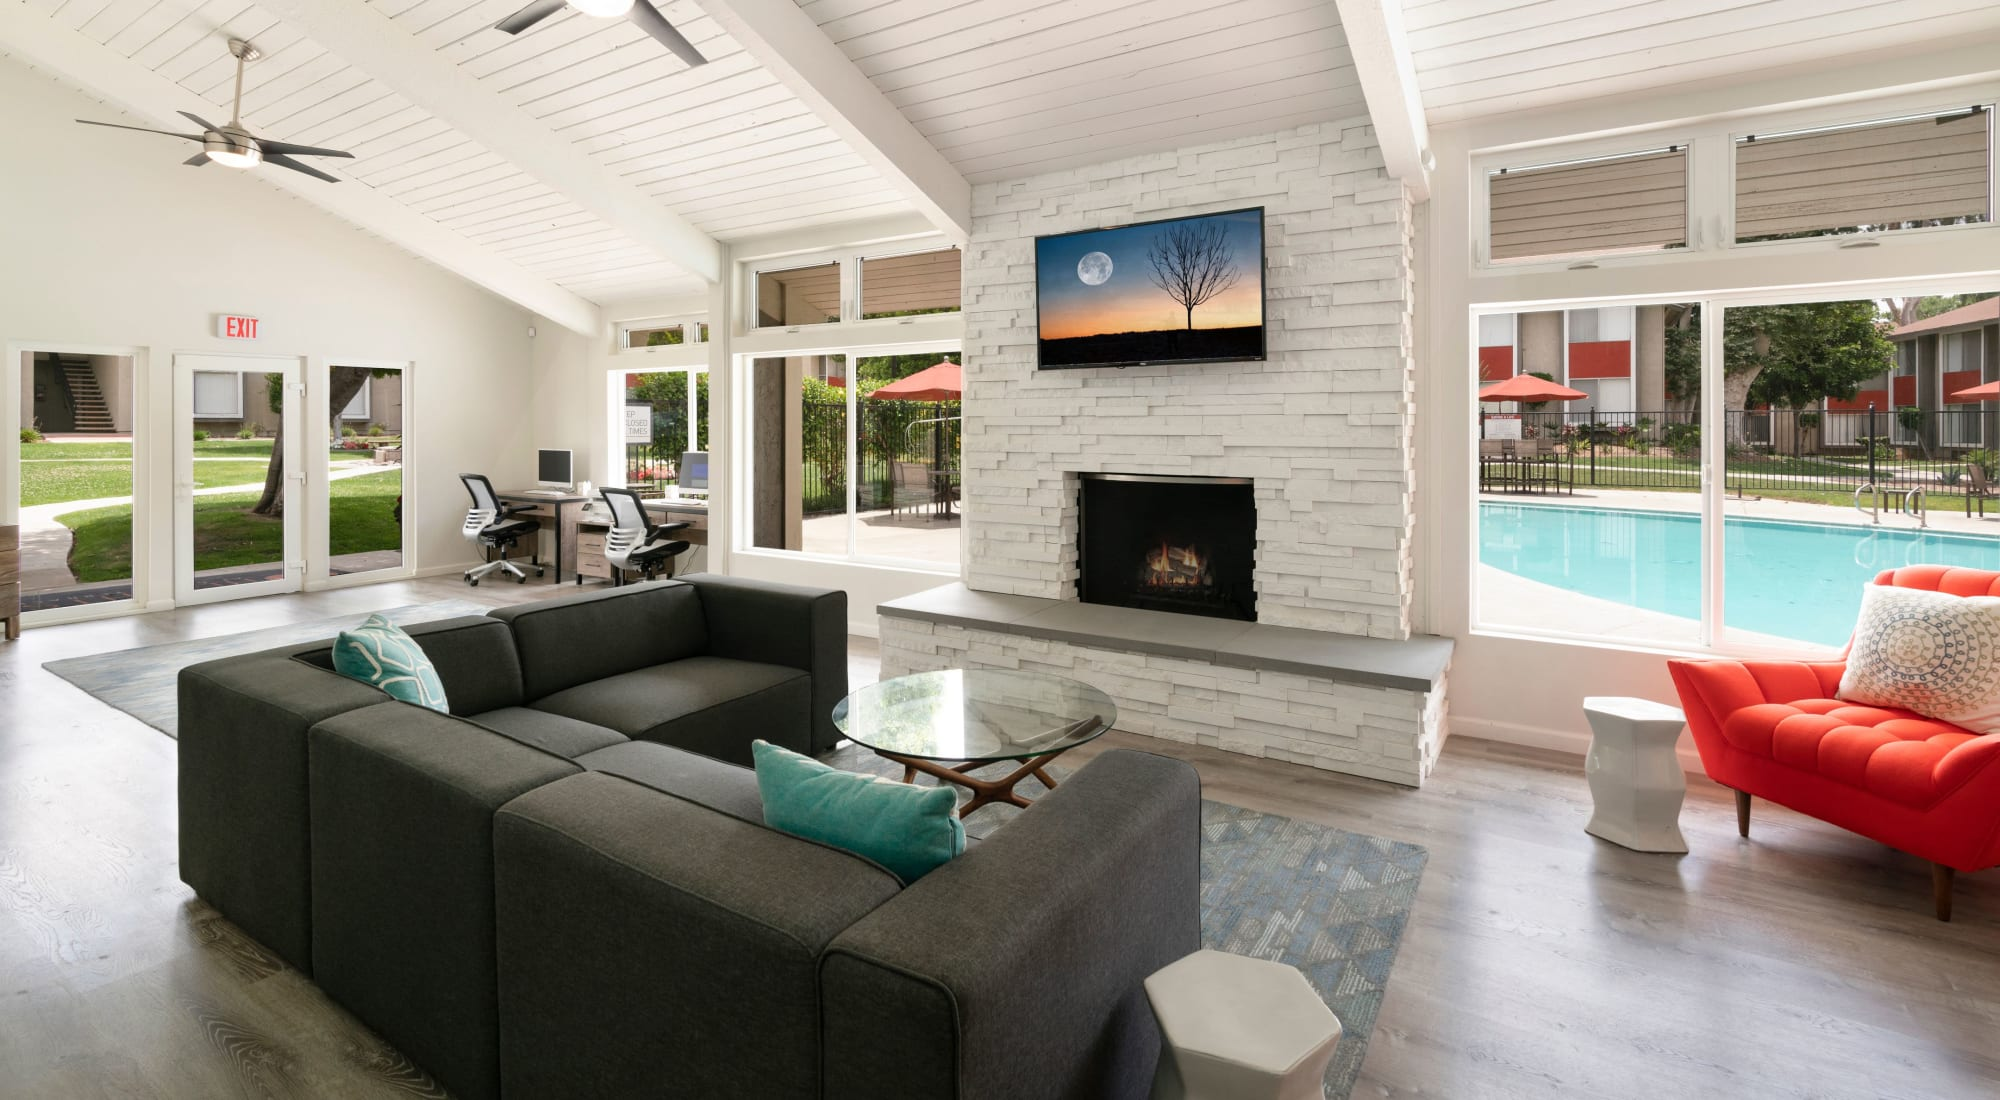 Schedule your tour of The Heights at Grand Terrace in Grand Terrace, California